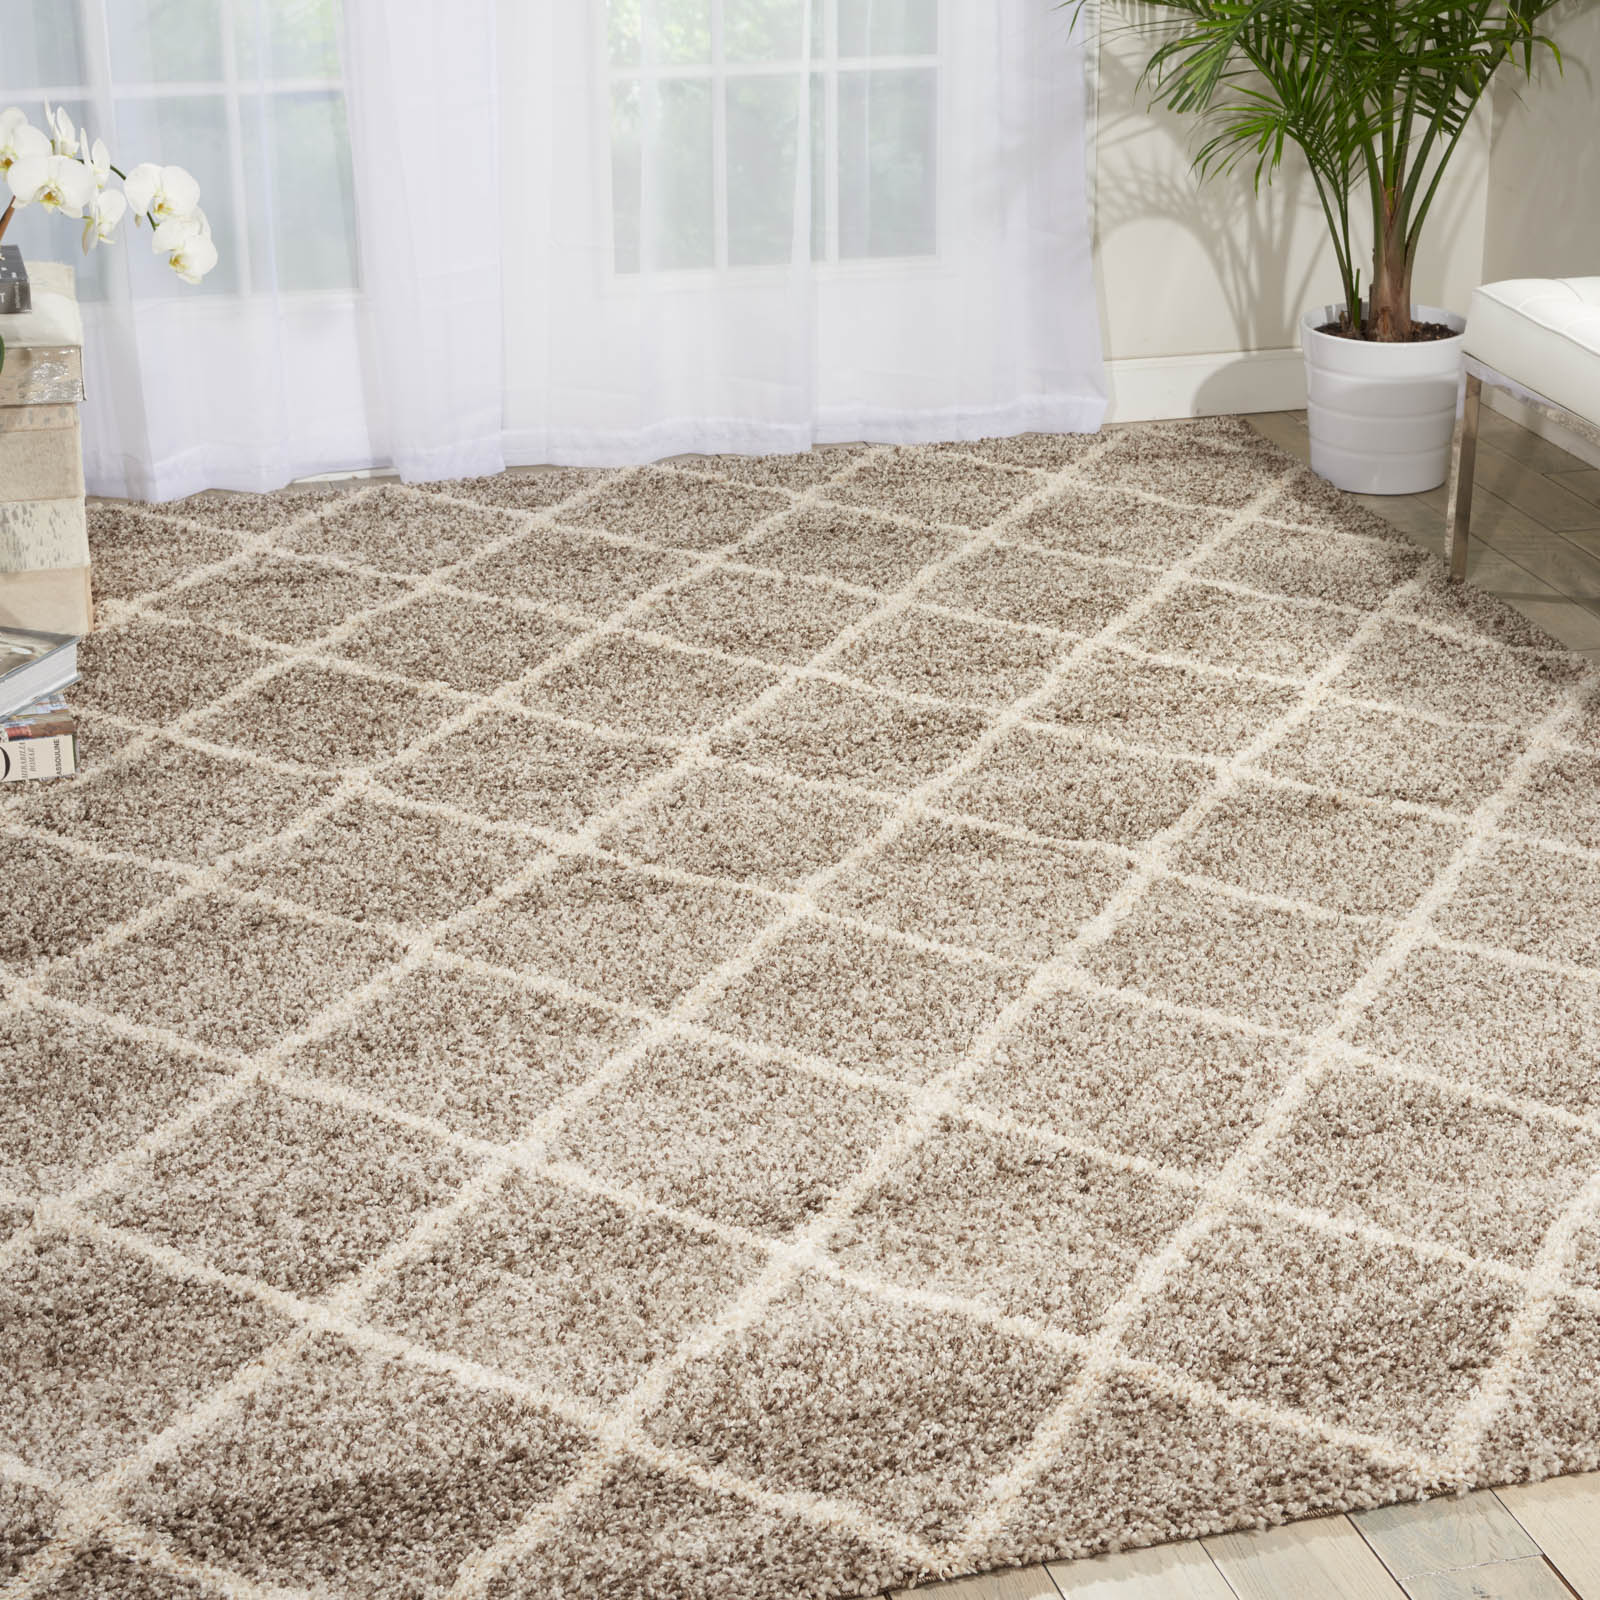 Persian Rug Brisbane: Brisbane Rugs BRI08 In Ivory And Charcoal Buy Online From